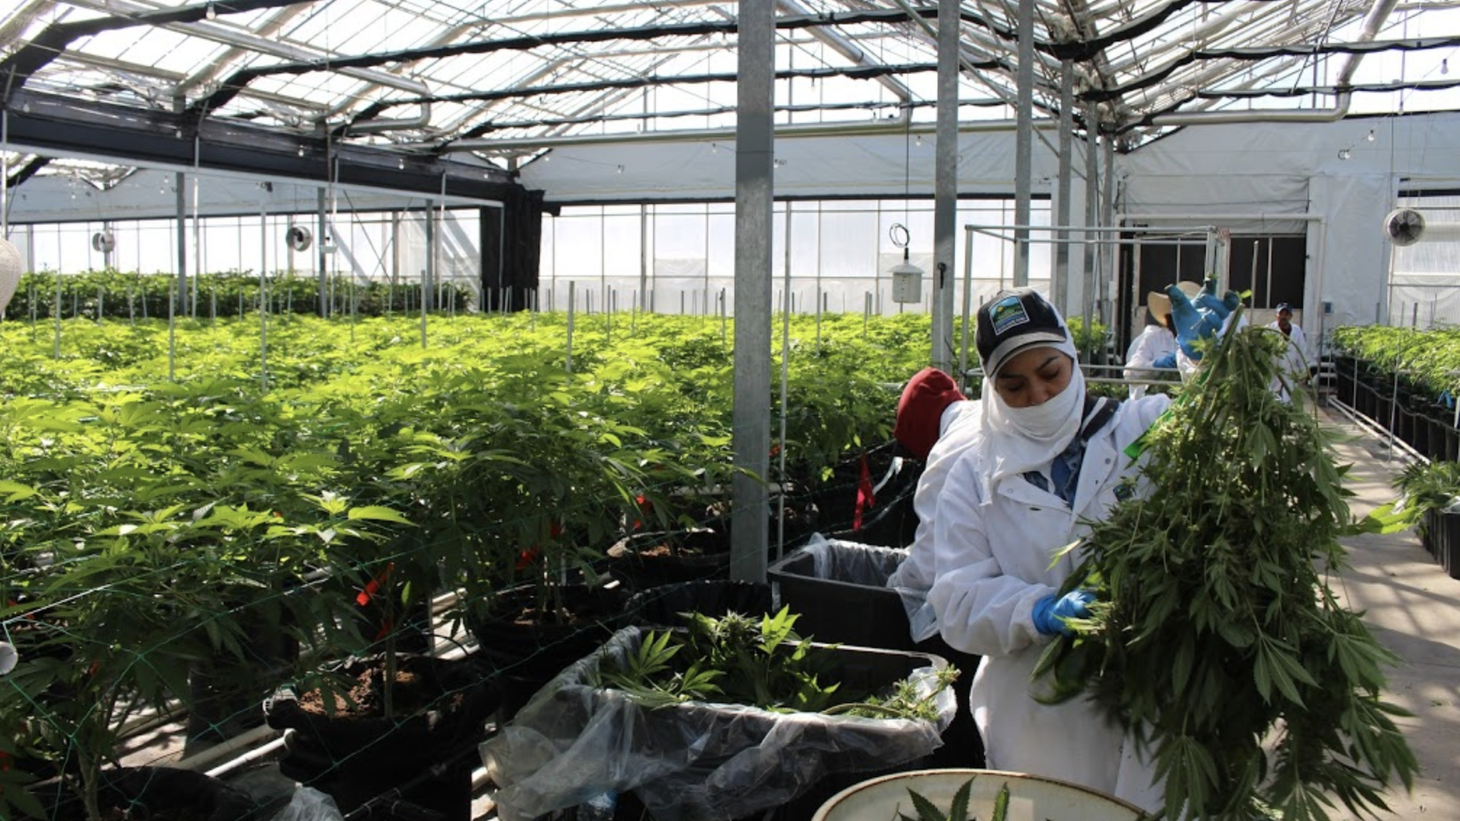 Cannabis growers inspect their crops under a large legal cannabis growing operation in Carpinteria.